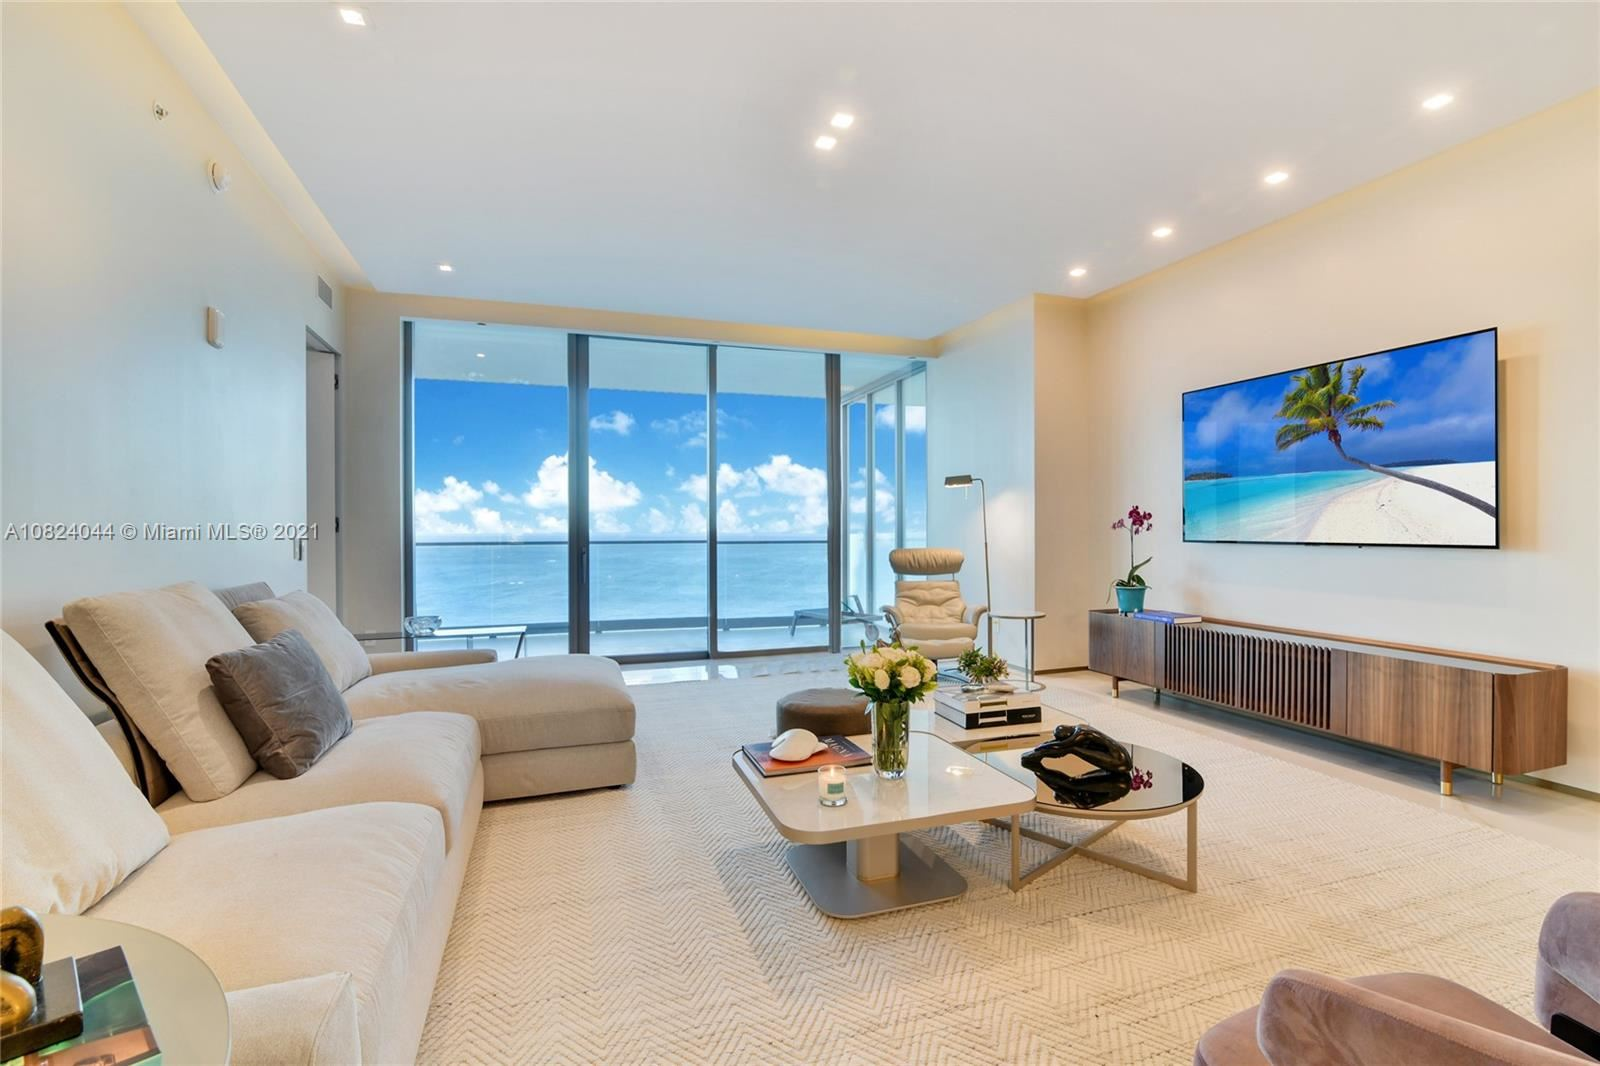 18975 Collins Ave #3202, Sunny Isles, FL 33160 - #: A10824044